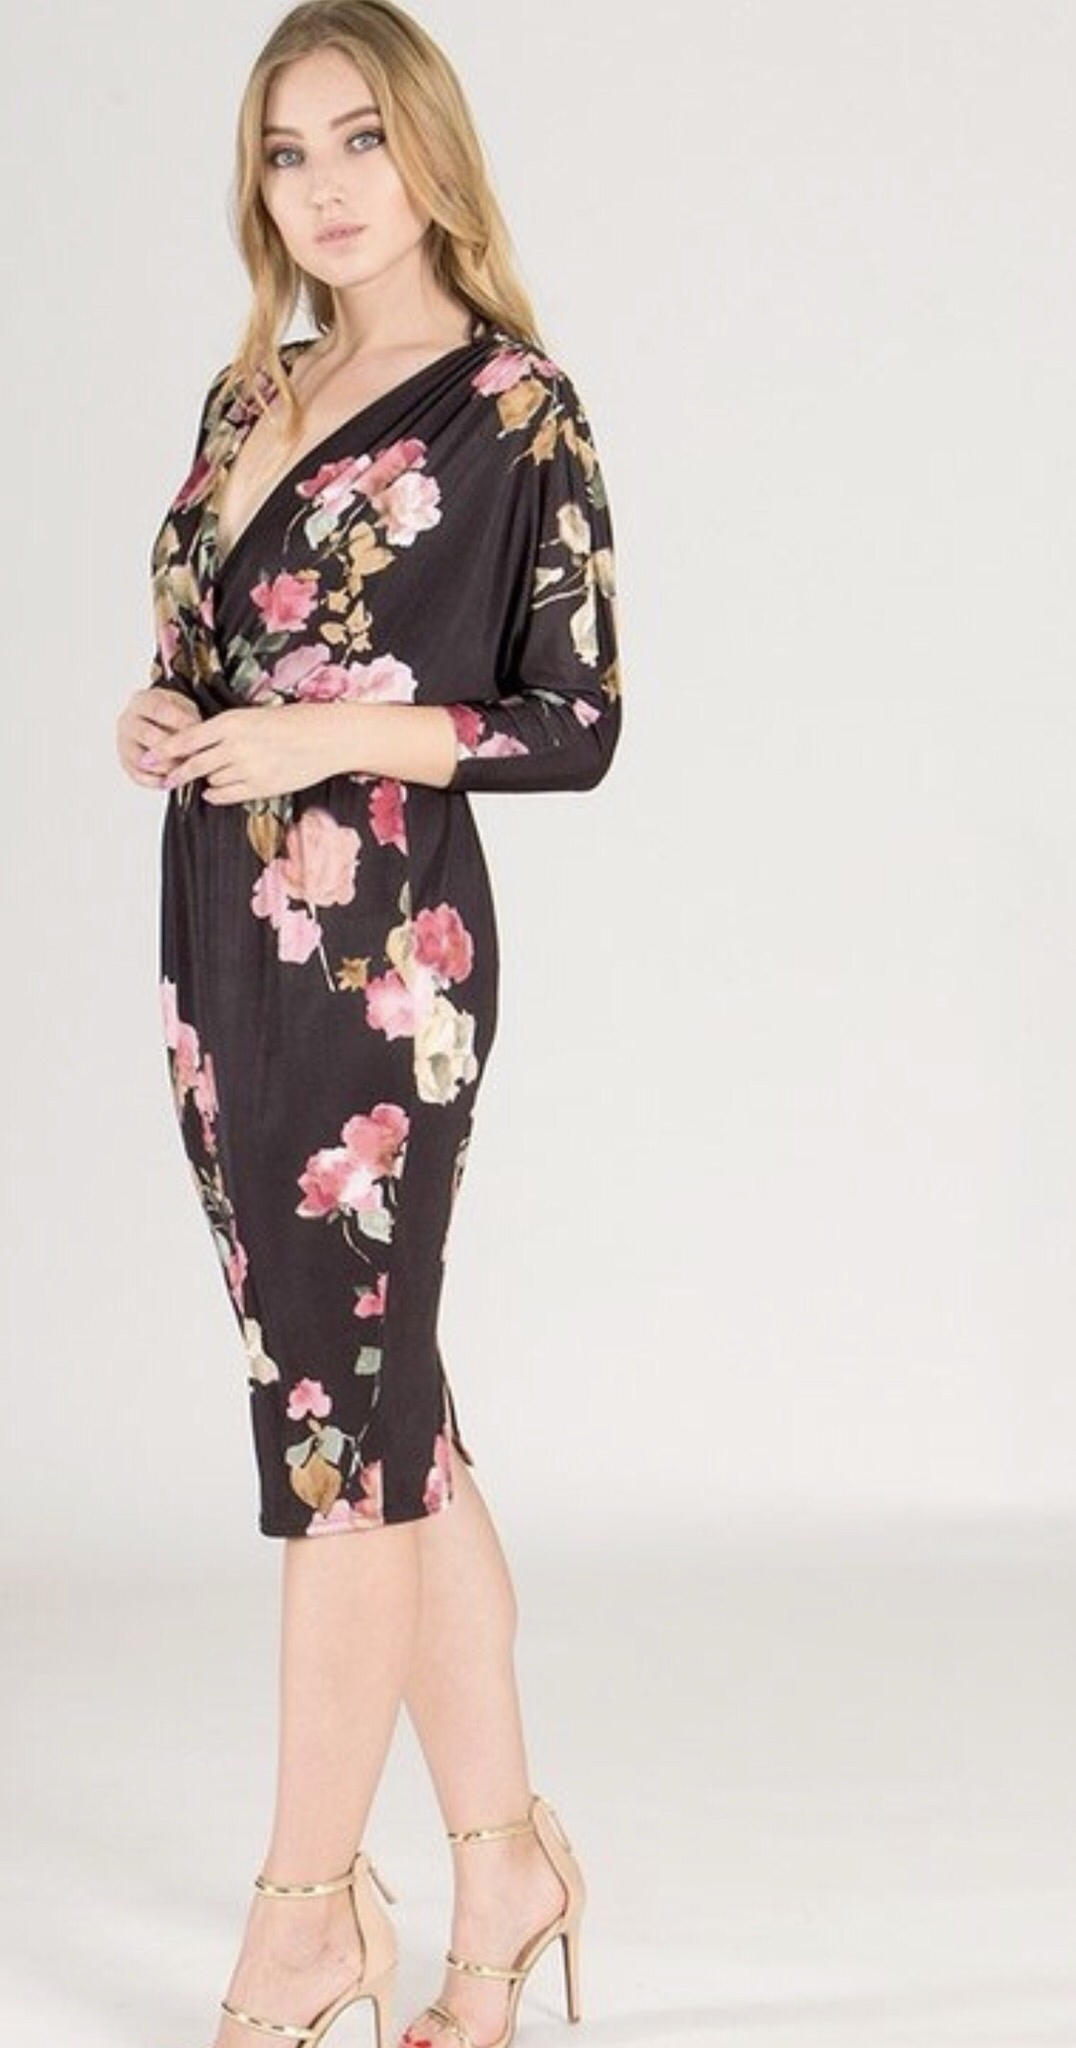 Bloomi Dress-Side